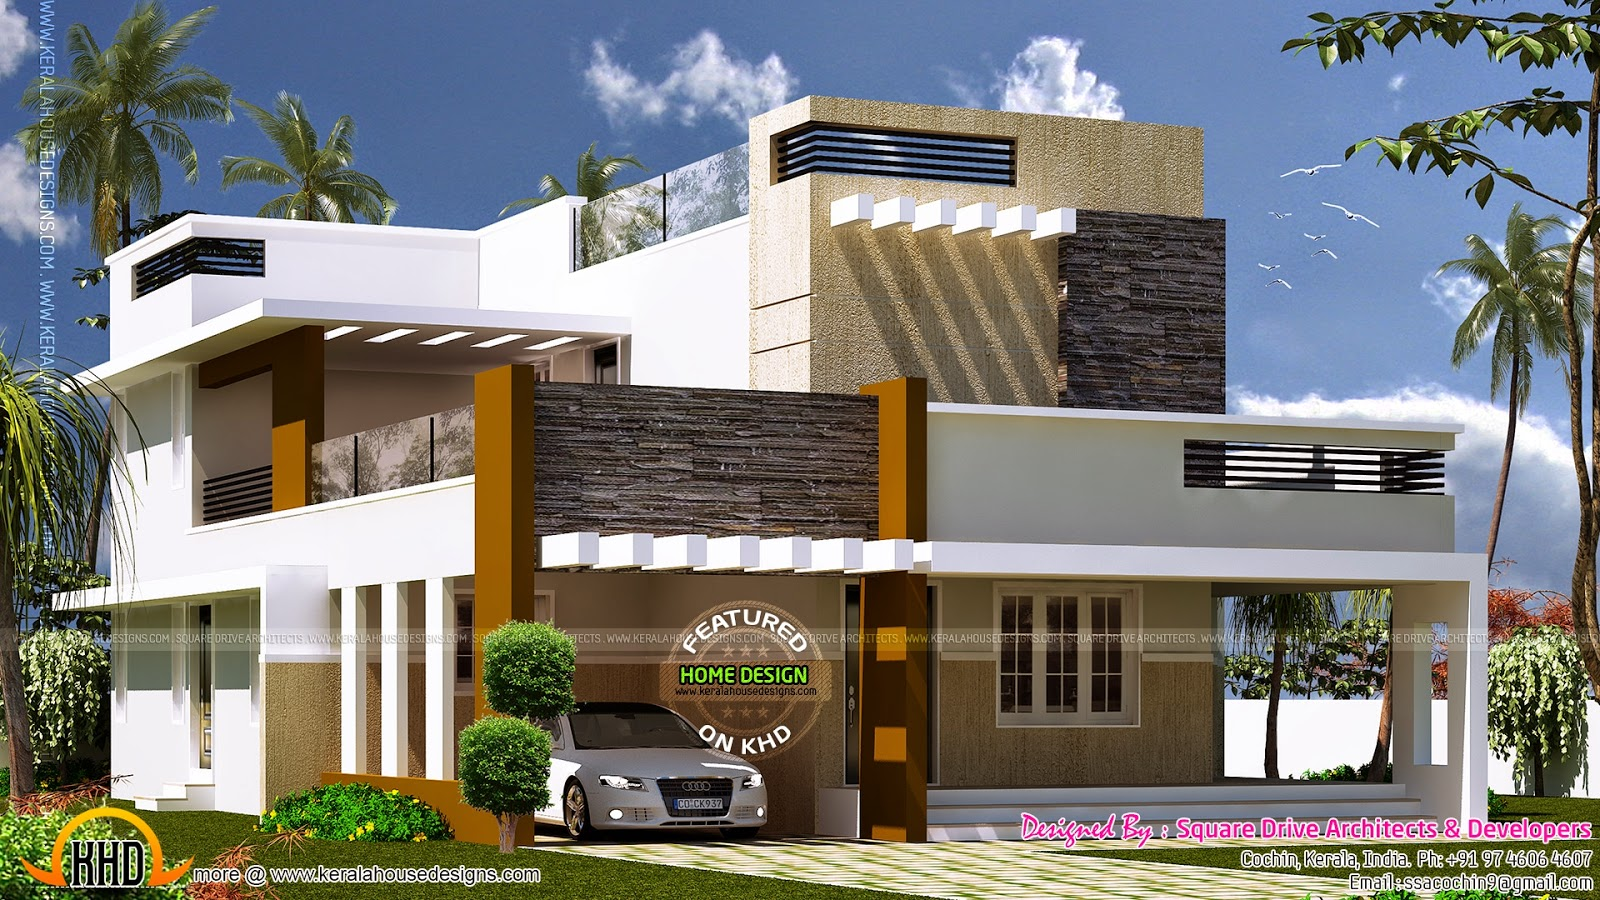 Exterior design of contemporary villa kerala home design for Indian house exterior design pictures